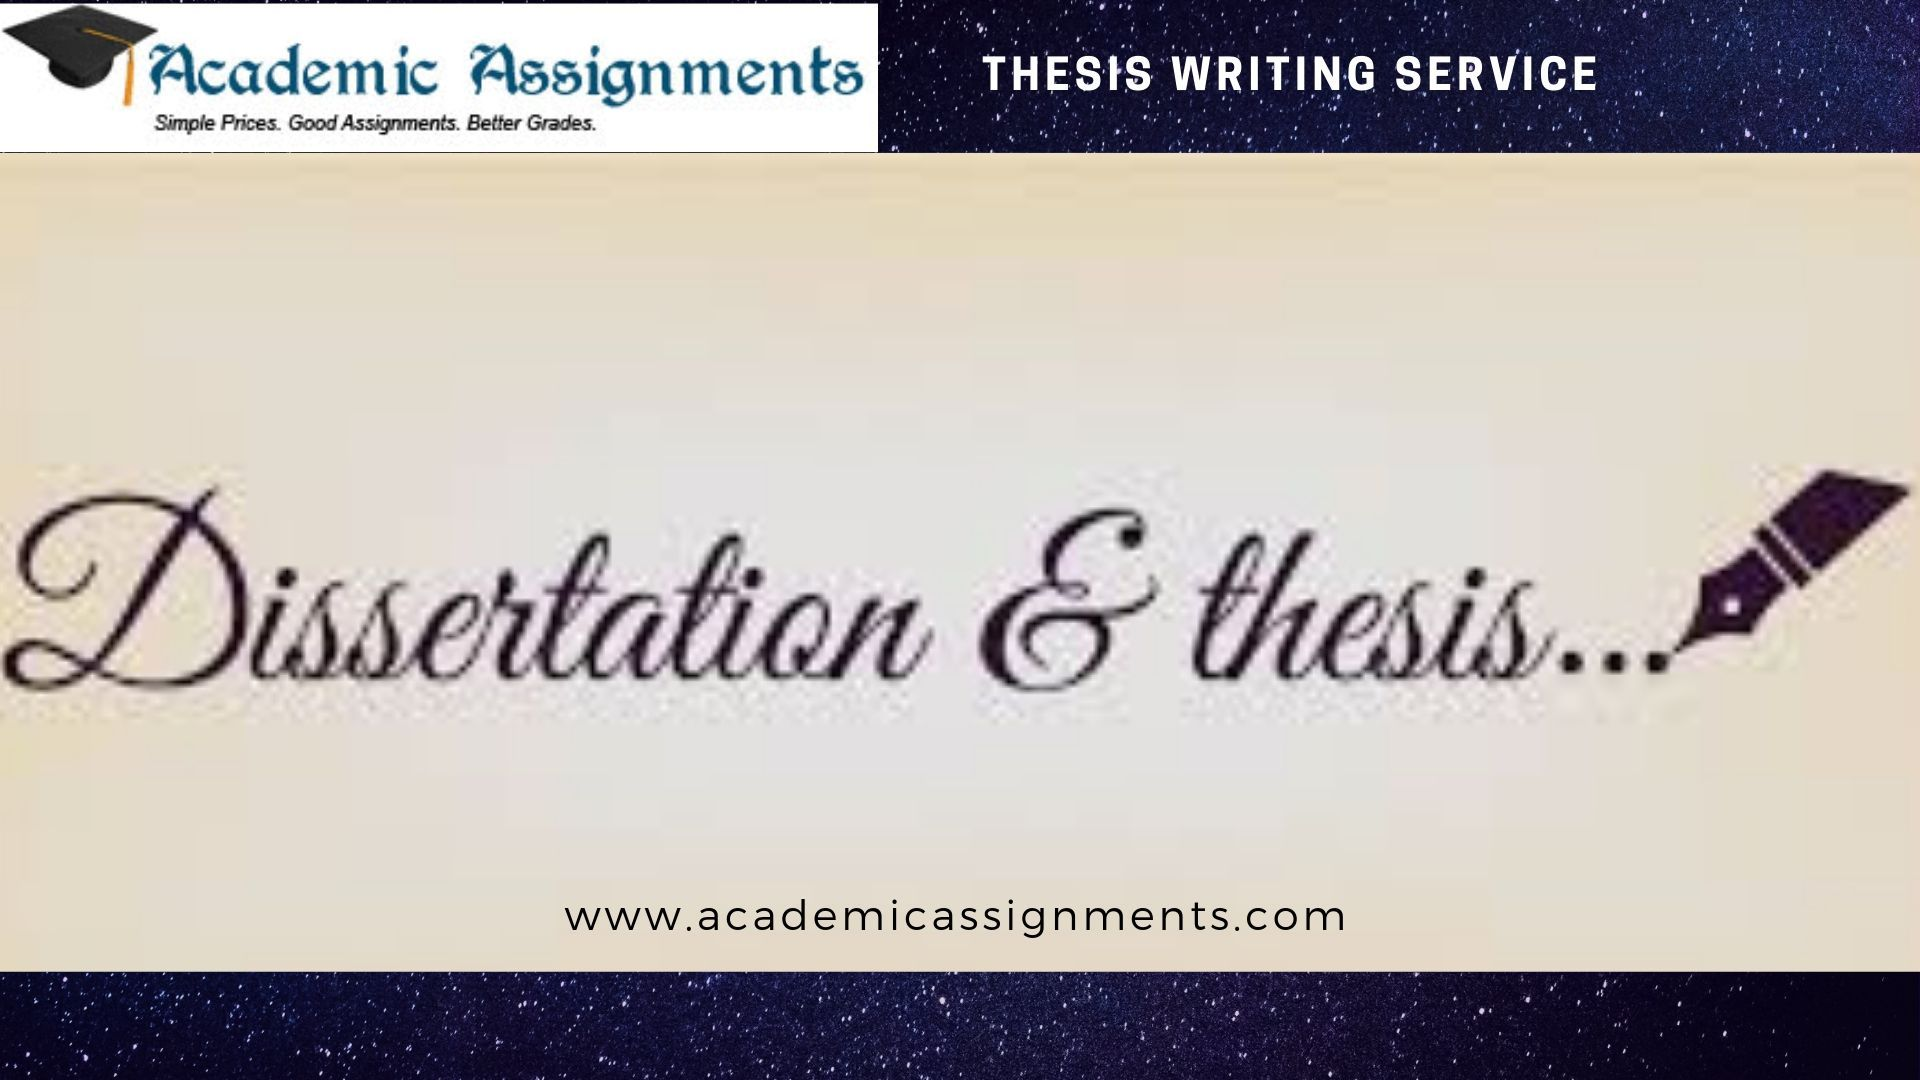 Thesi Writing Service Dissertation Services University Of London Dissertations East Queen Mary College Master